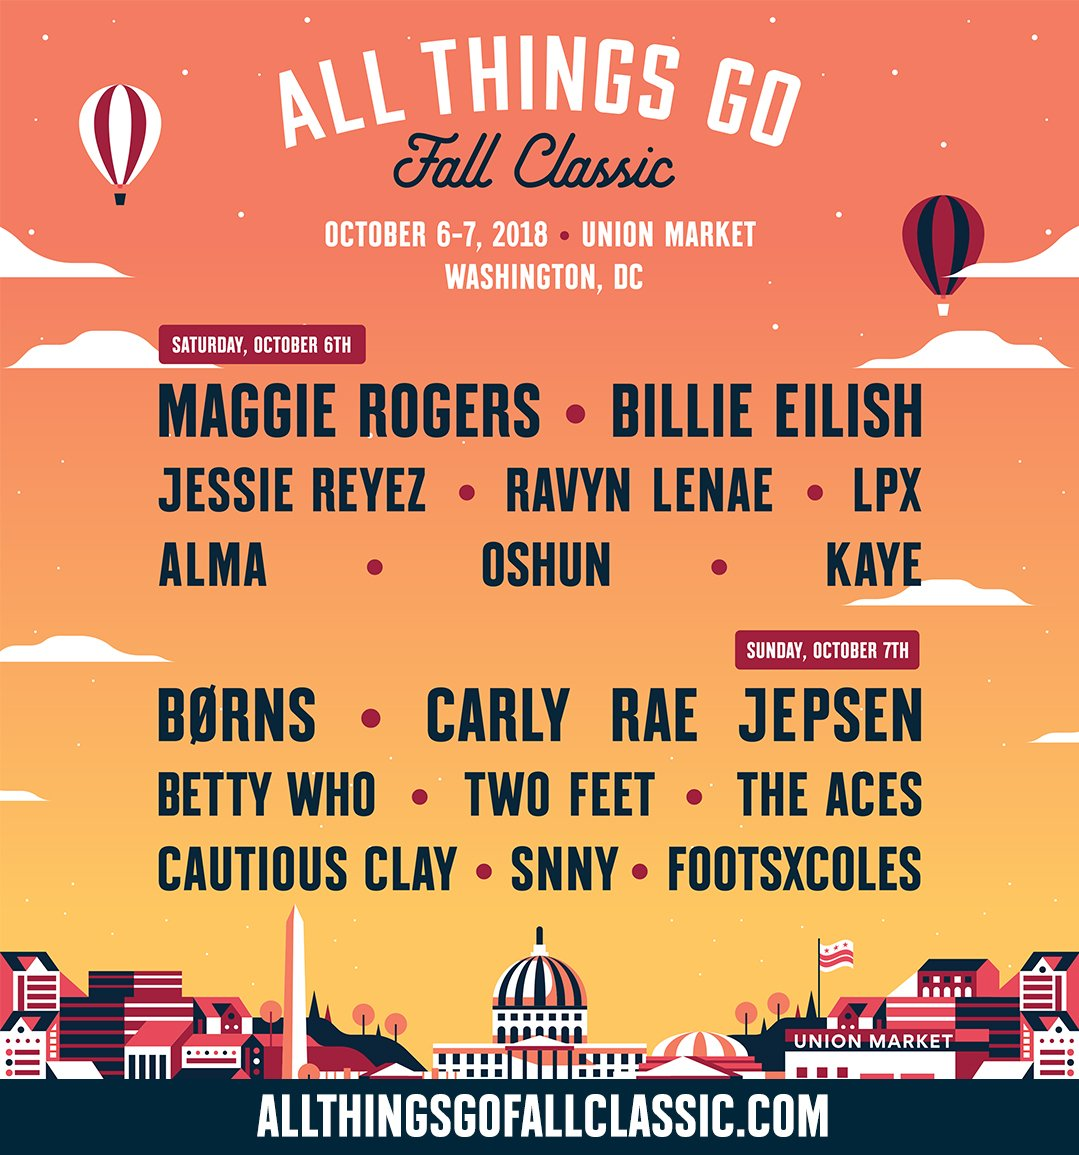 The Fall Classic 2018 lineup is here. Tickets go onsale tomorrow at 10AM ET. #ATGFallClassic